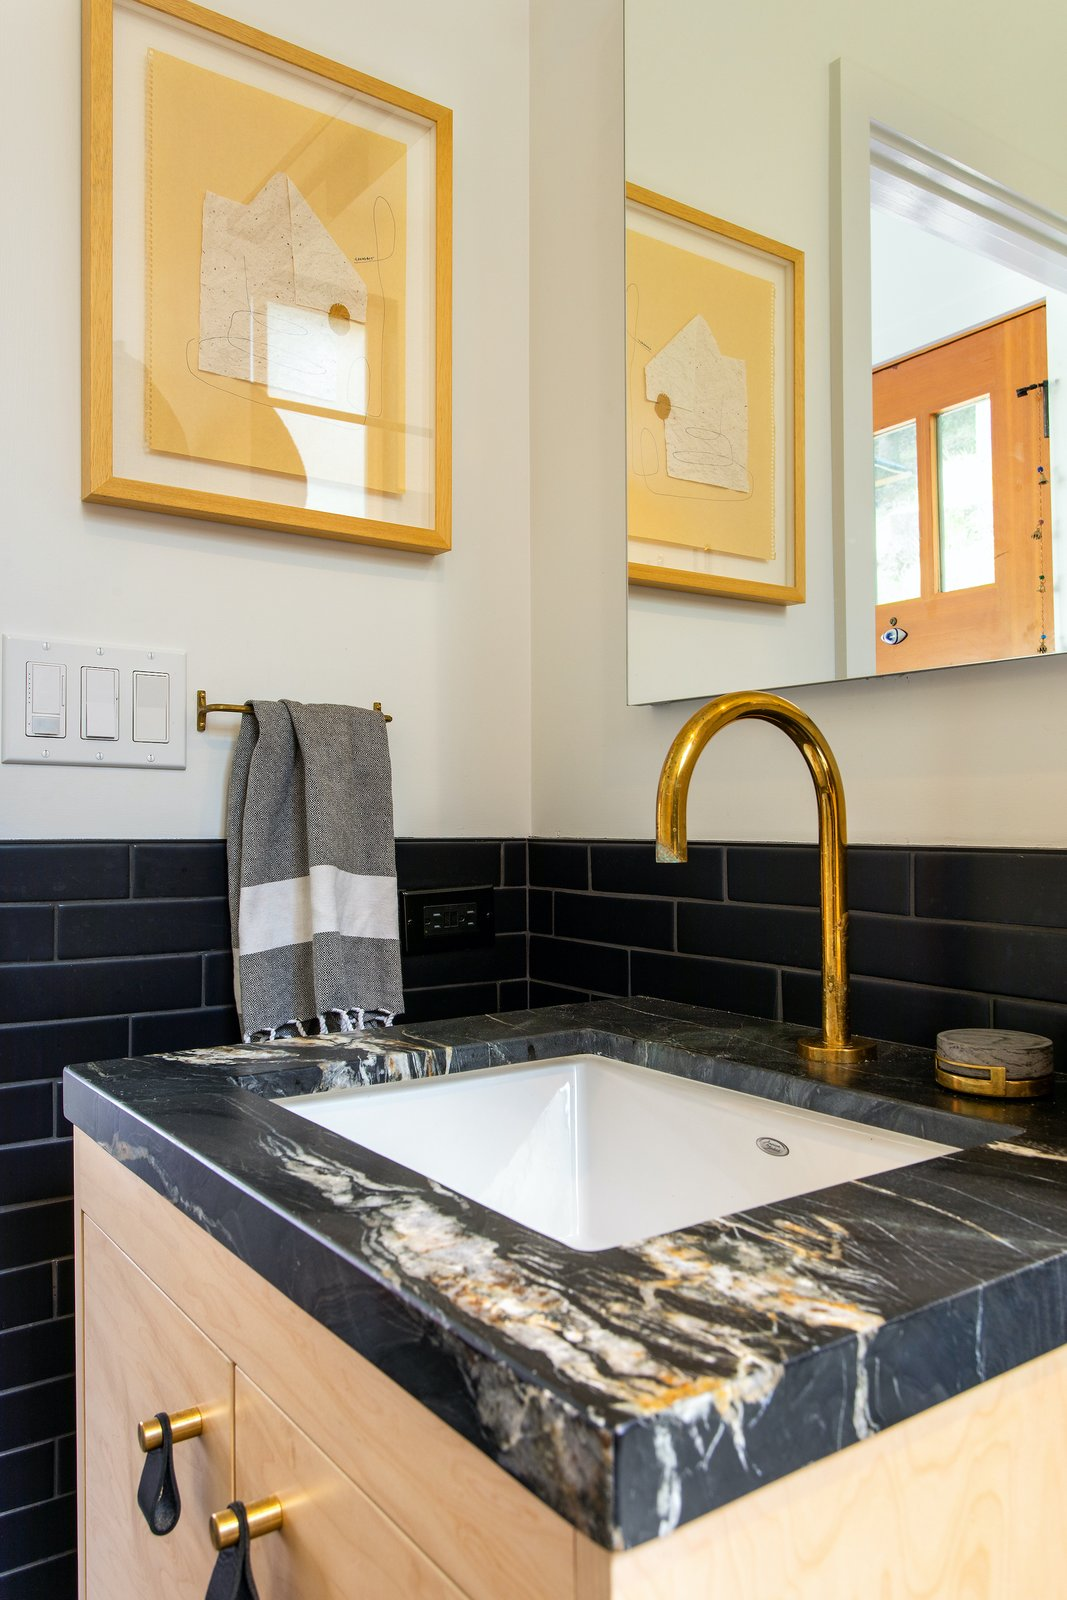 Bathroom of Fairfax House by Shands Studio after the renovation.